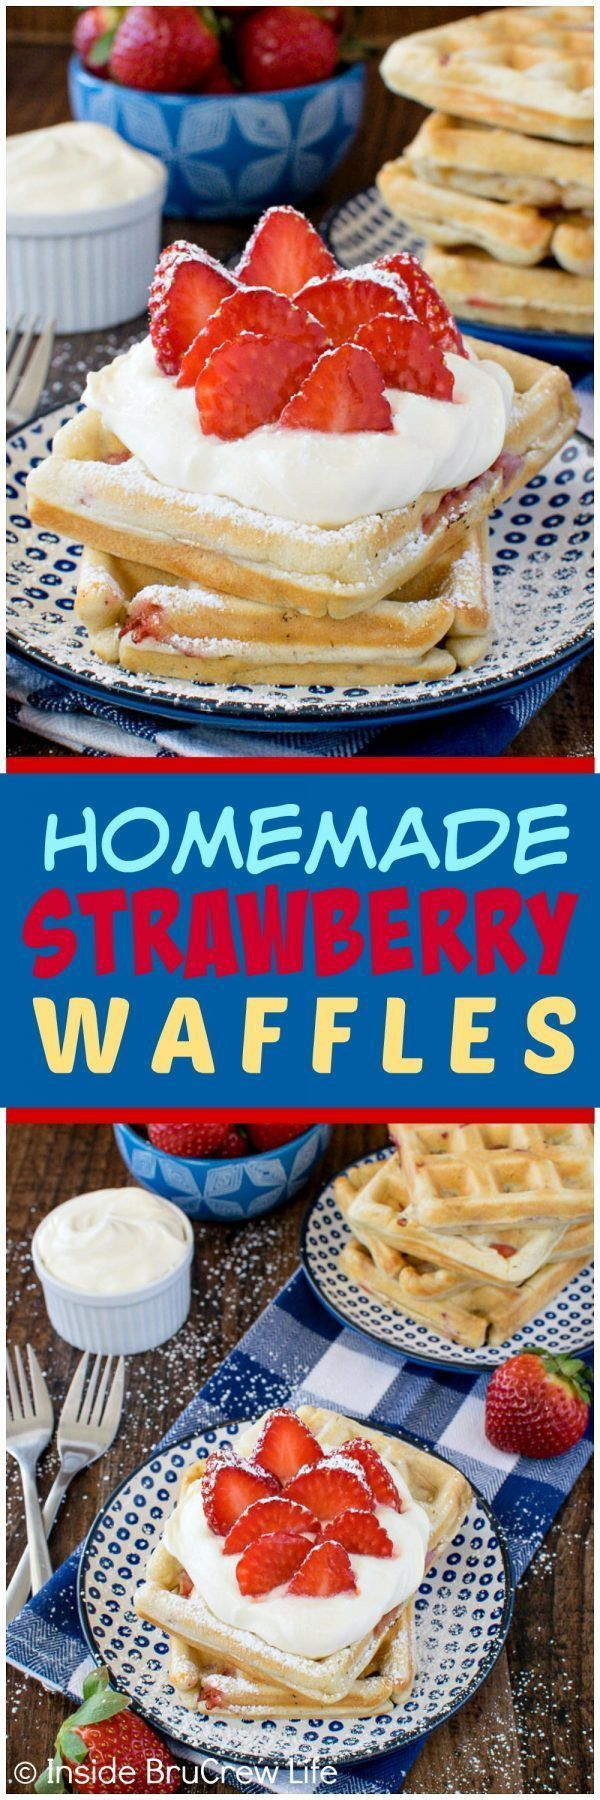 Homemade Strawberry Waffles - this easy breakfast recipe is loaded with fresh berries!  Add some lemon cream and more berries for a fun breakfast recipe!